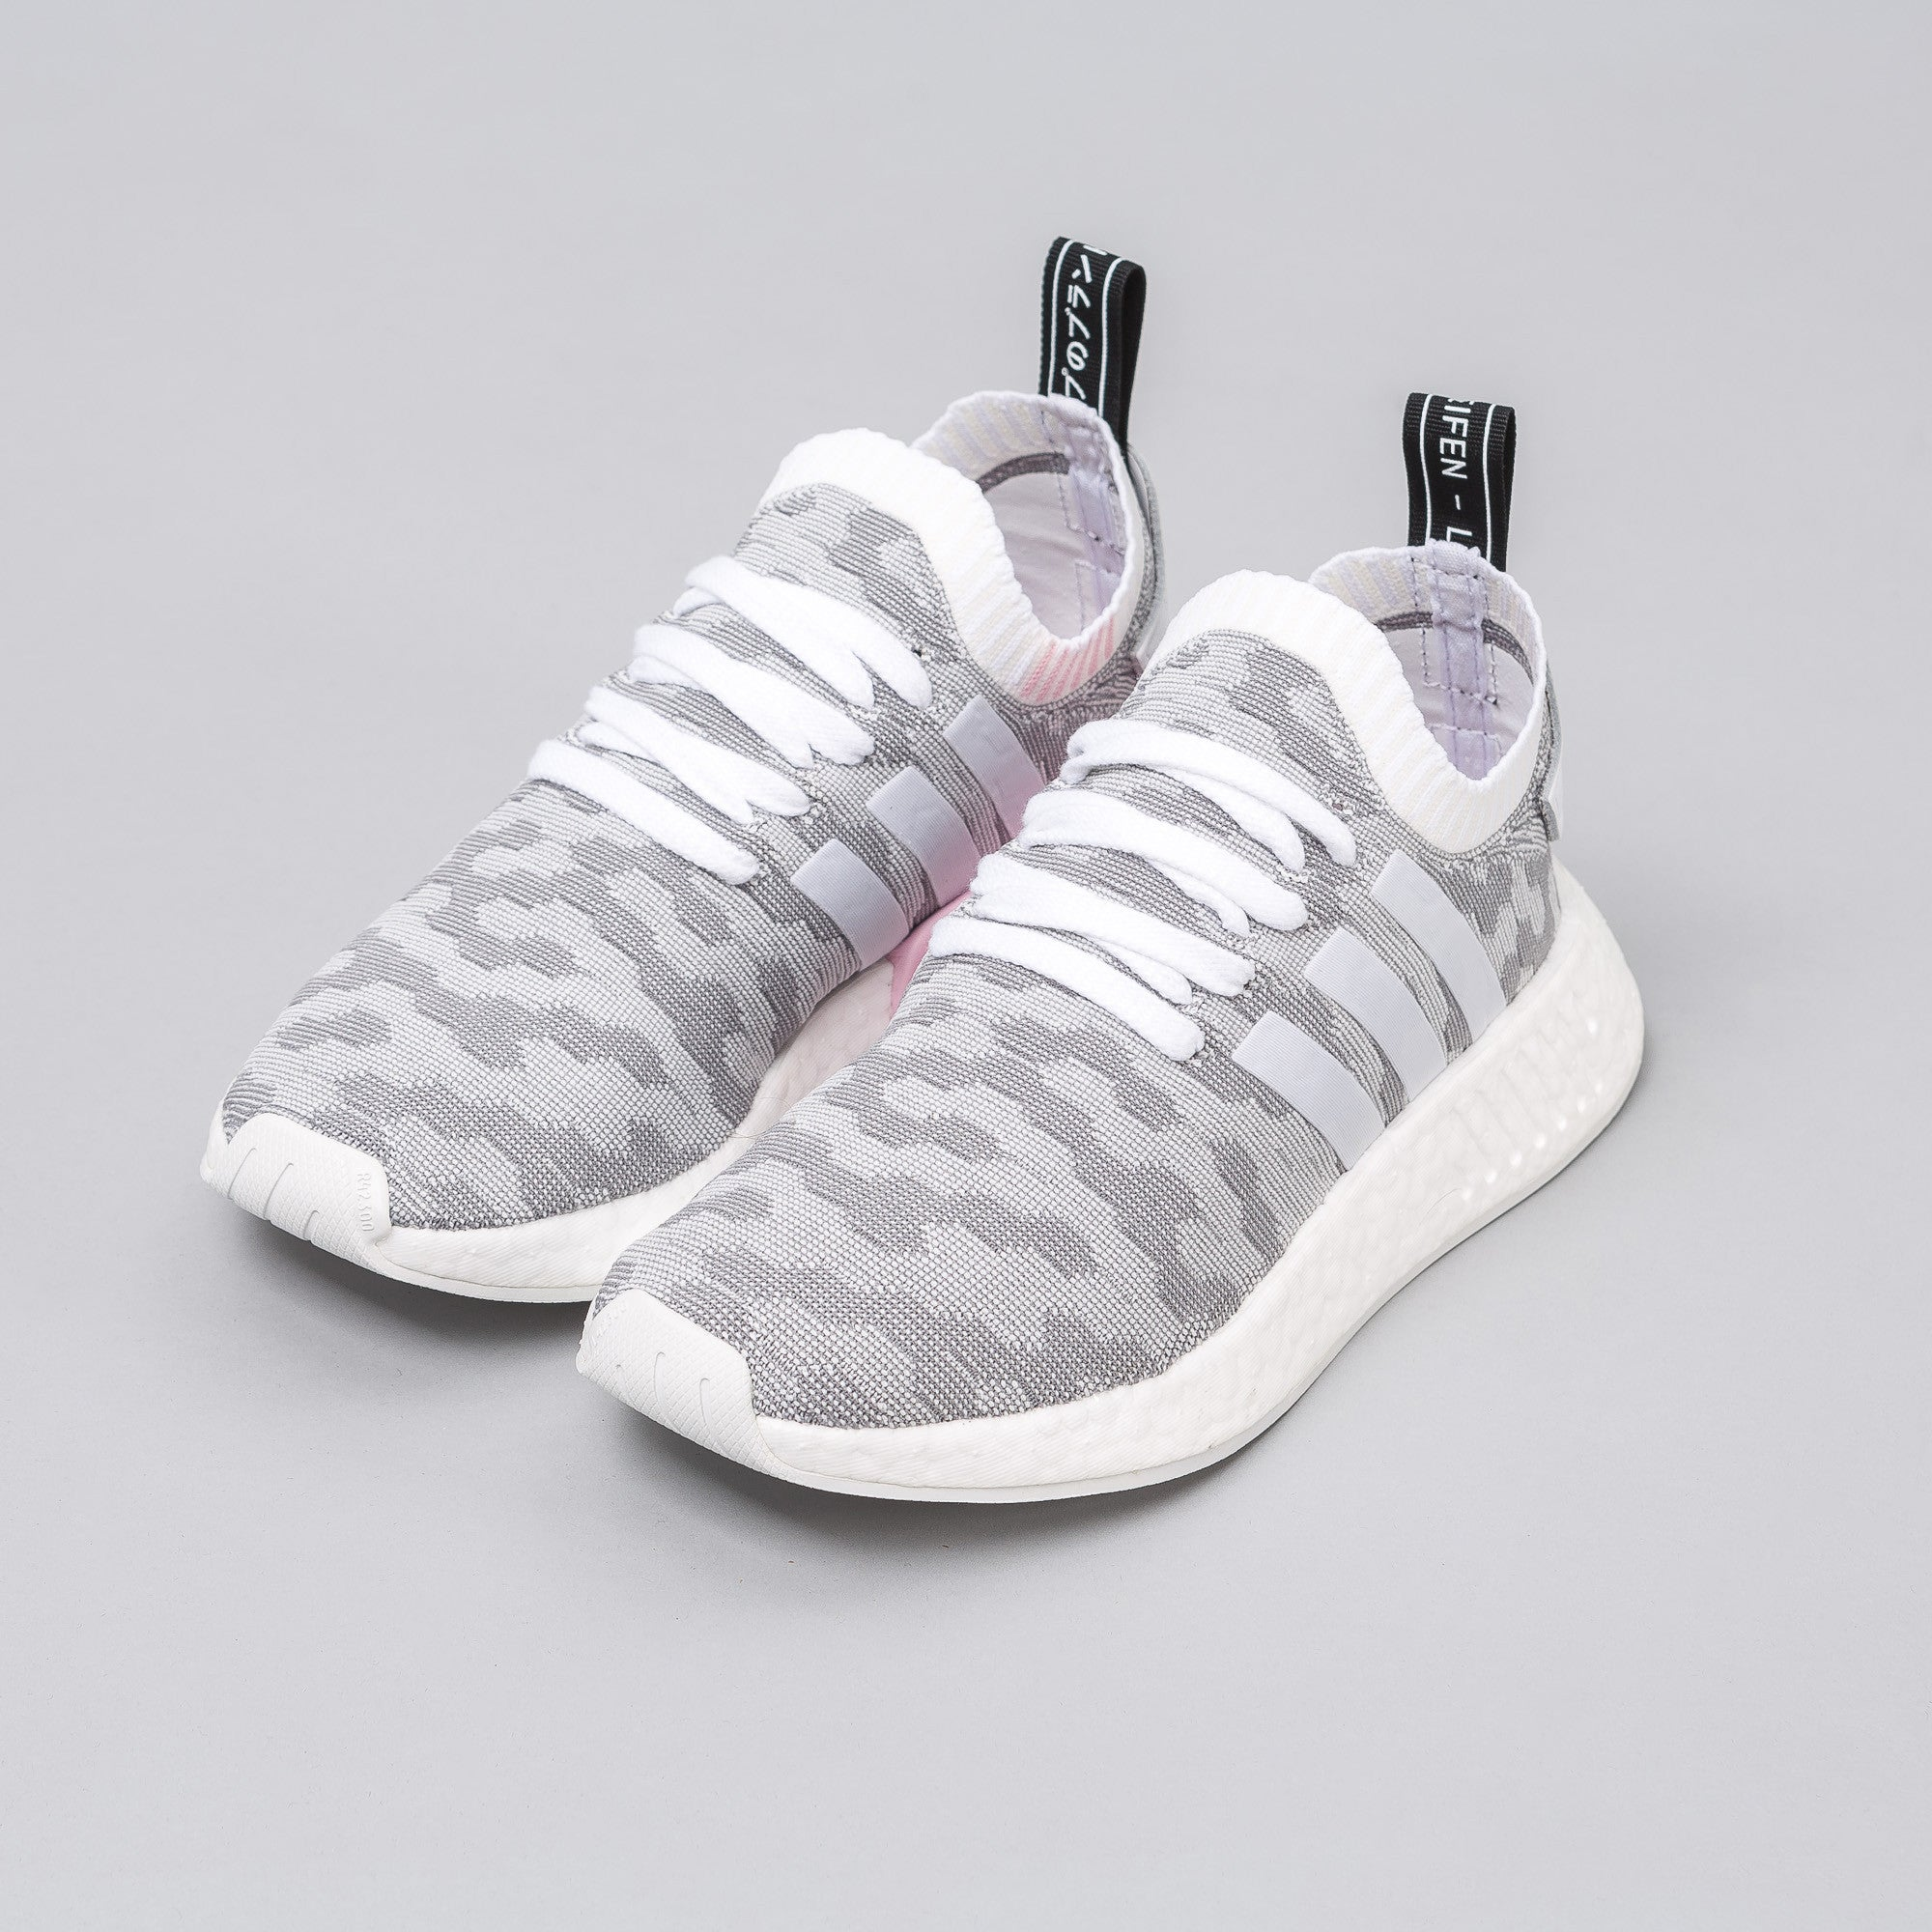 524103ef0 adidas nmd r2 pk womens adidas superstar shoes womens white Equipped ...